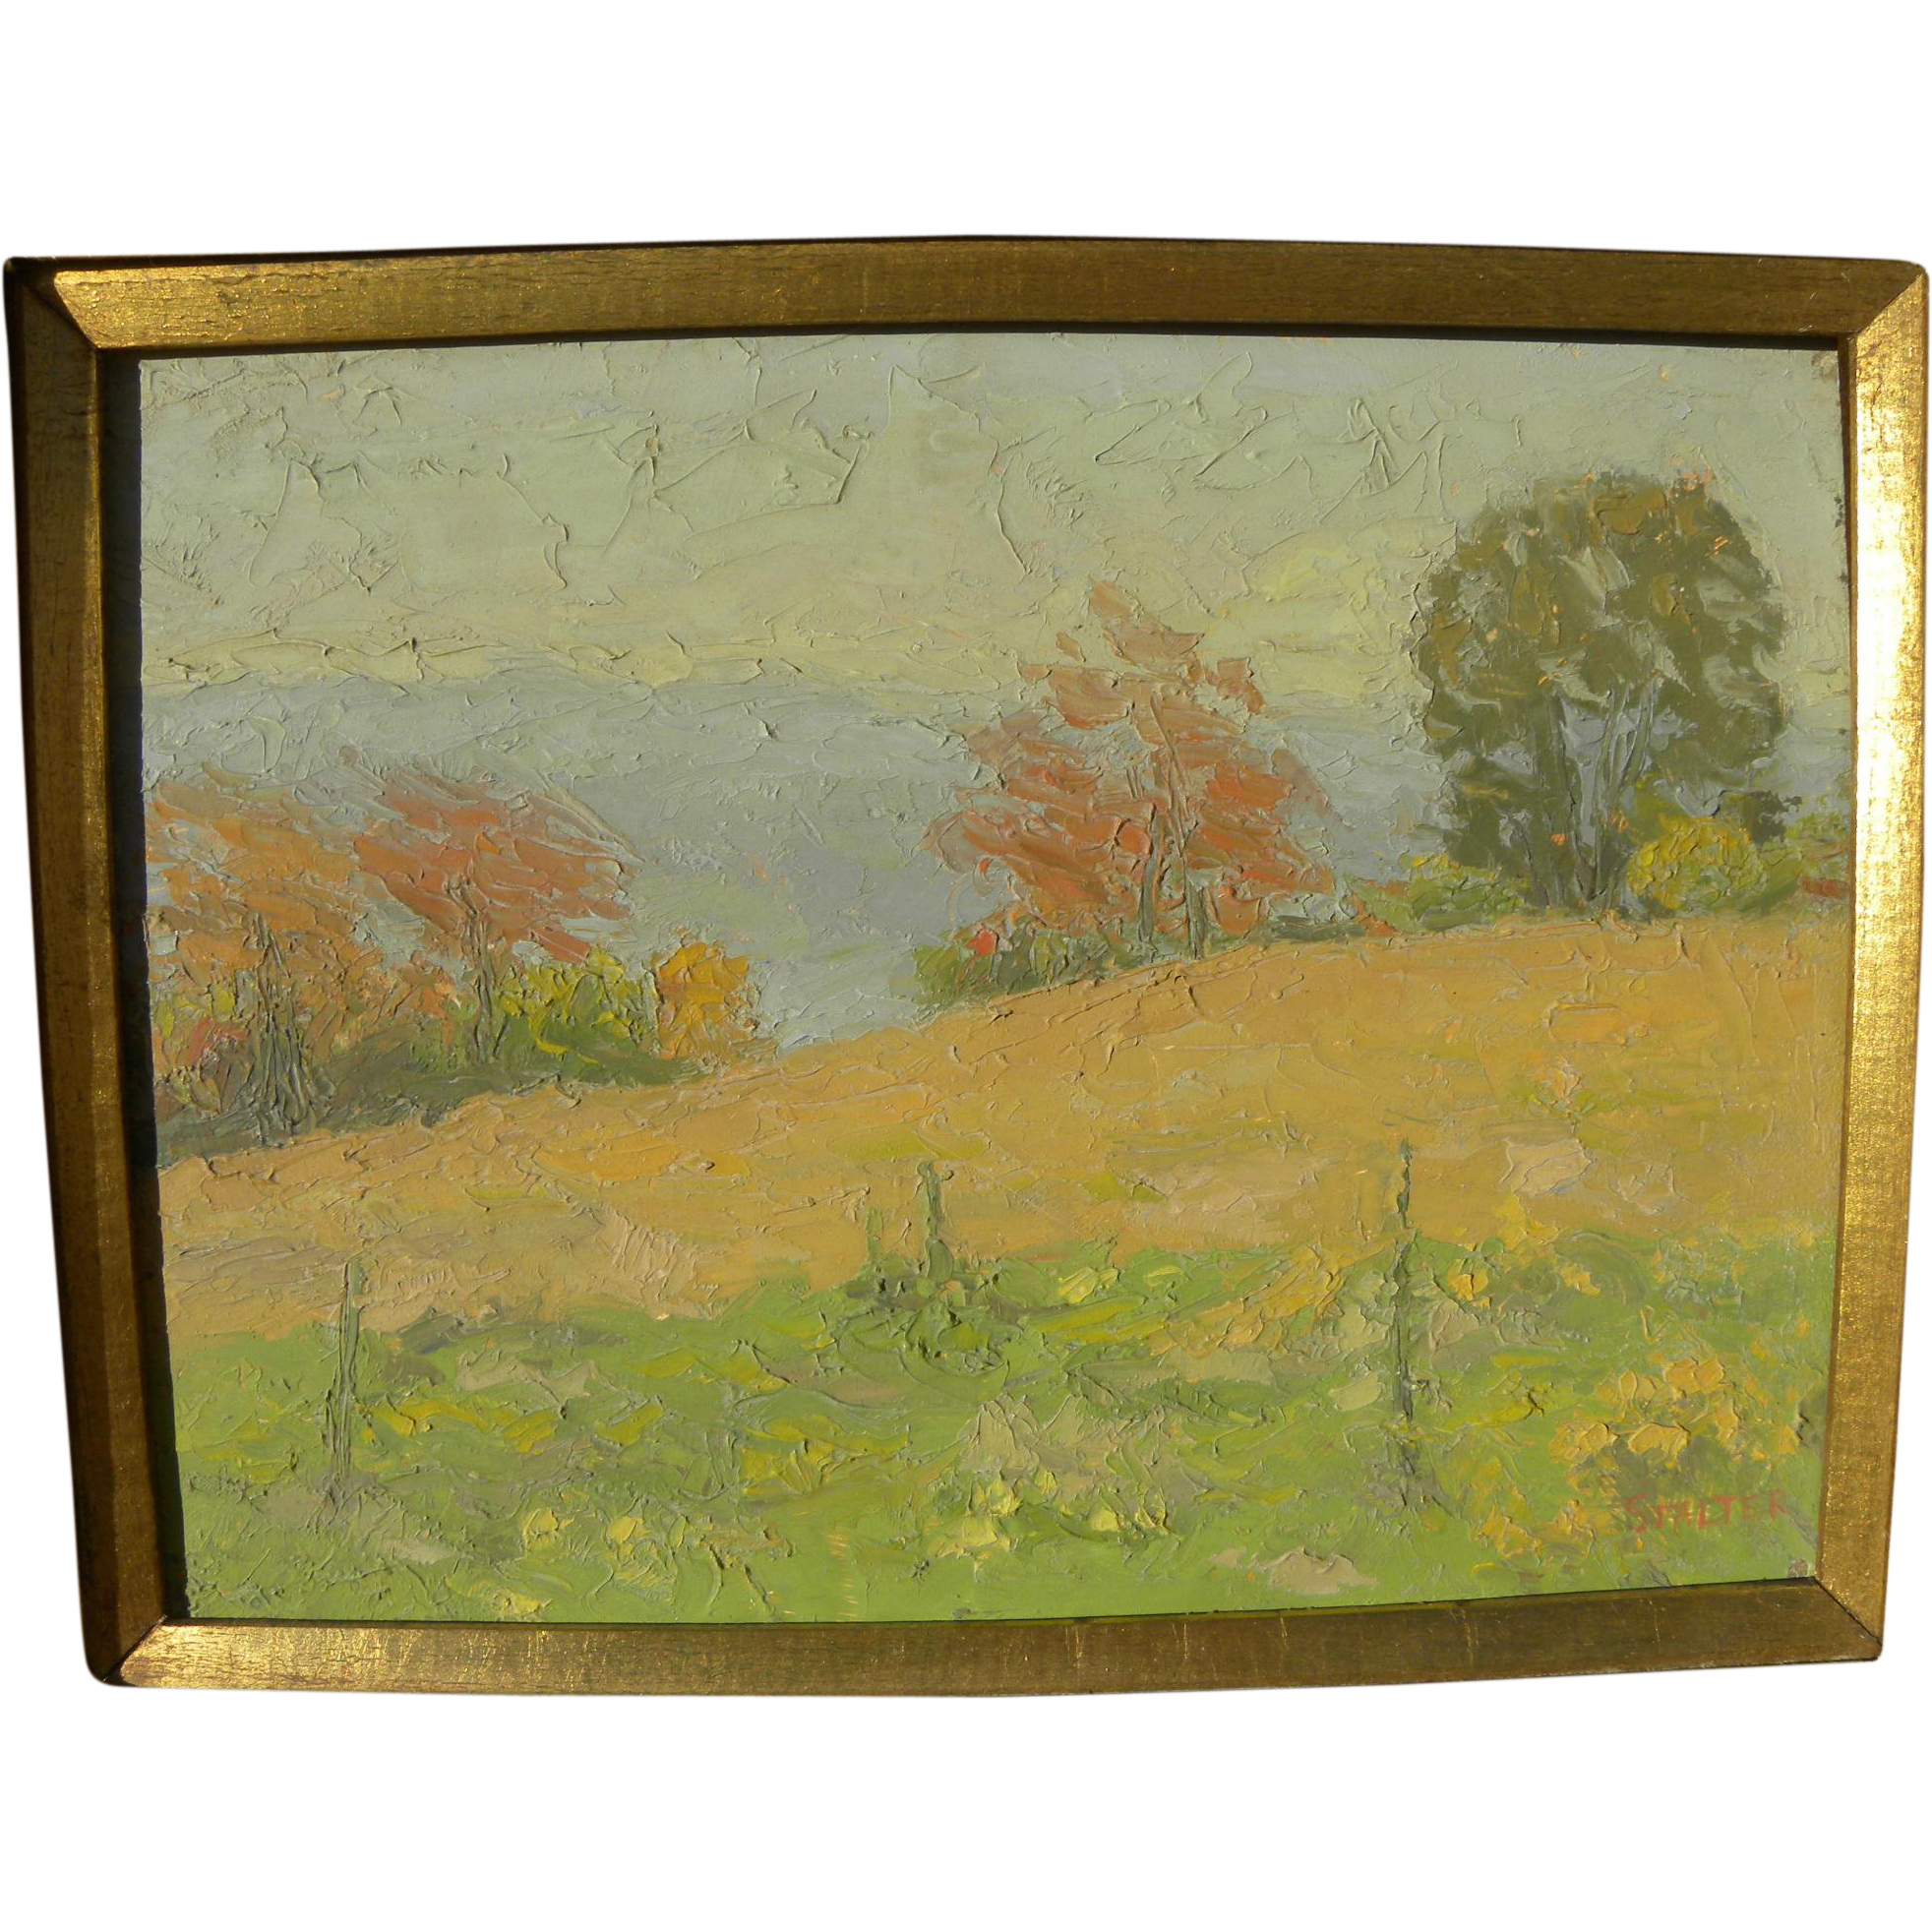 RICHARD STALTER (1934-) painting of Connecticut landscape by noted contemporary American Impressionist